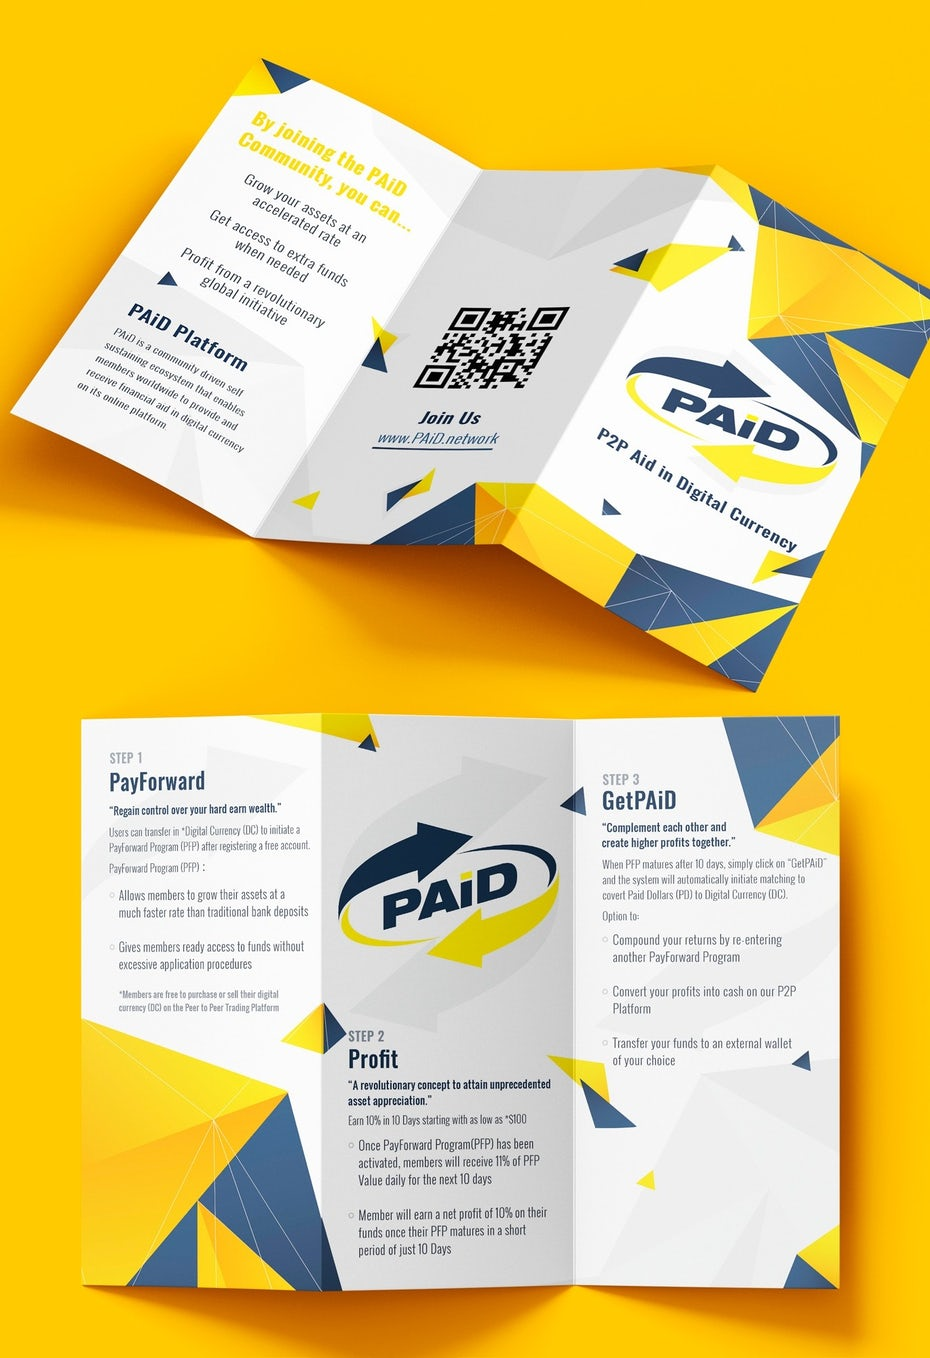 Branding trends 2020 example: Digital currency brochure